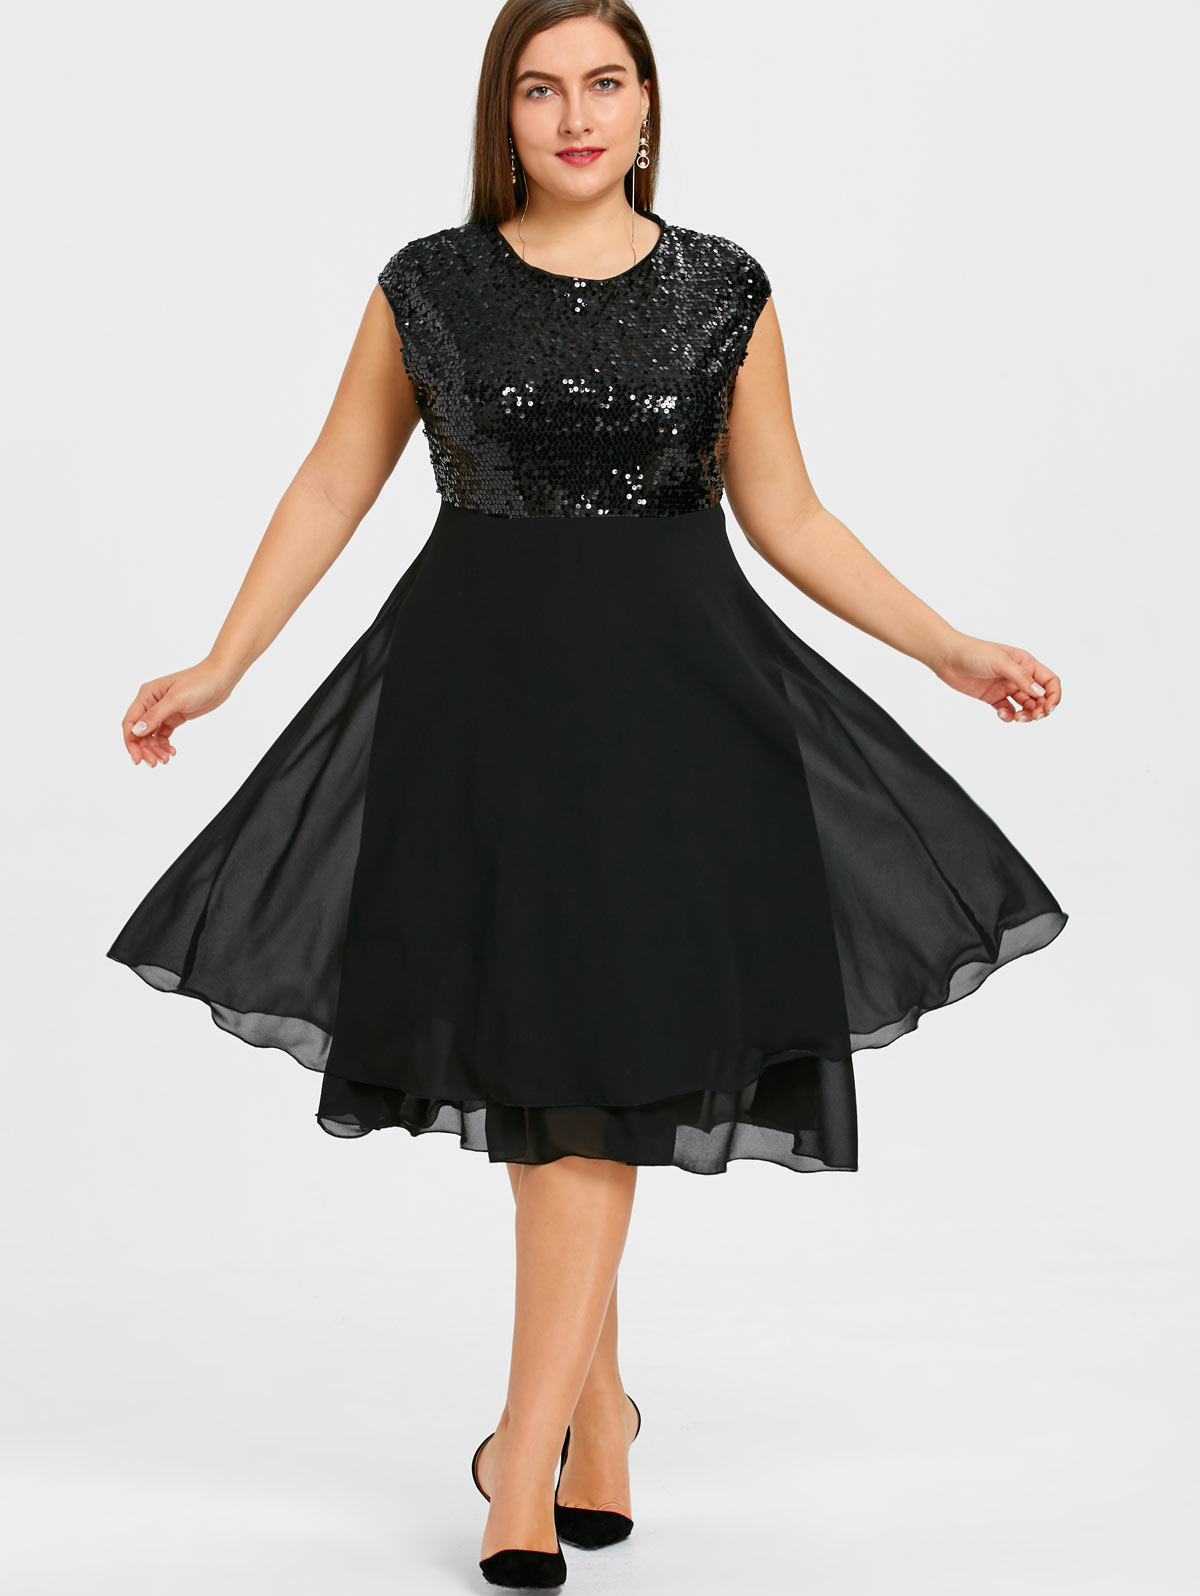 4a842ae4ebf74 US $33.68 |Wipalo Plus Size Sequins Women Dress Solid Black Flounce Chiffon  Dress Glitter Summer Sparkly Sleeveless Vintage Party Dresses-in Dresses ...